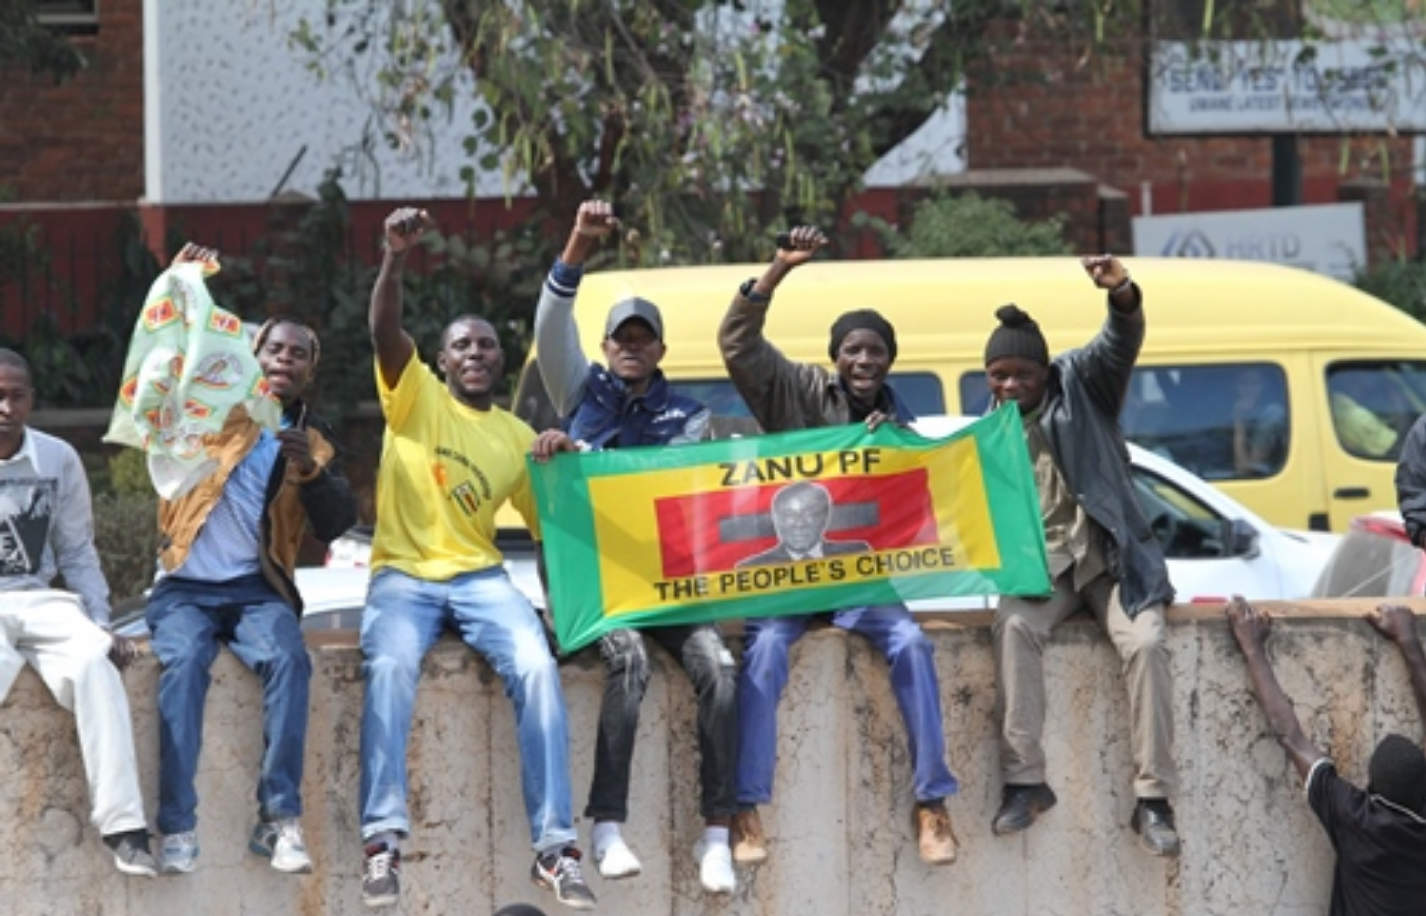 If ZANU PF's finger is not on election trigger, risk of misfire remains HIGH